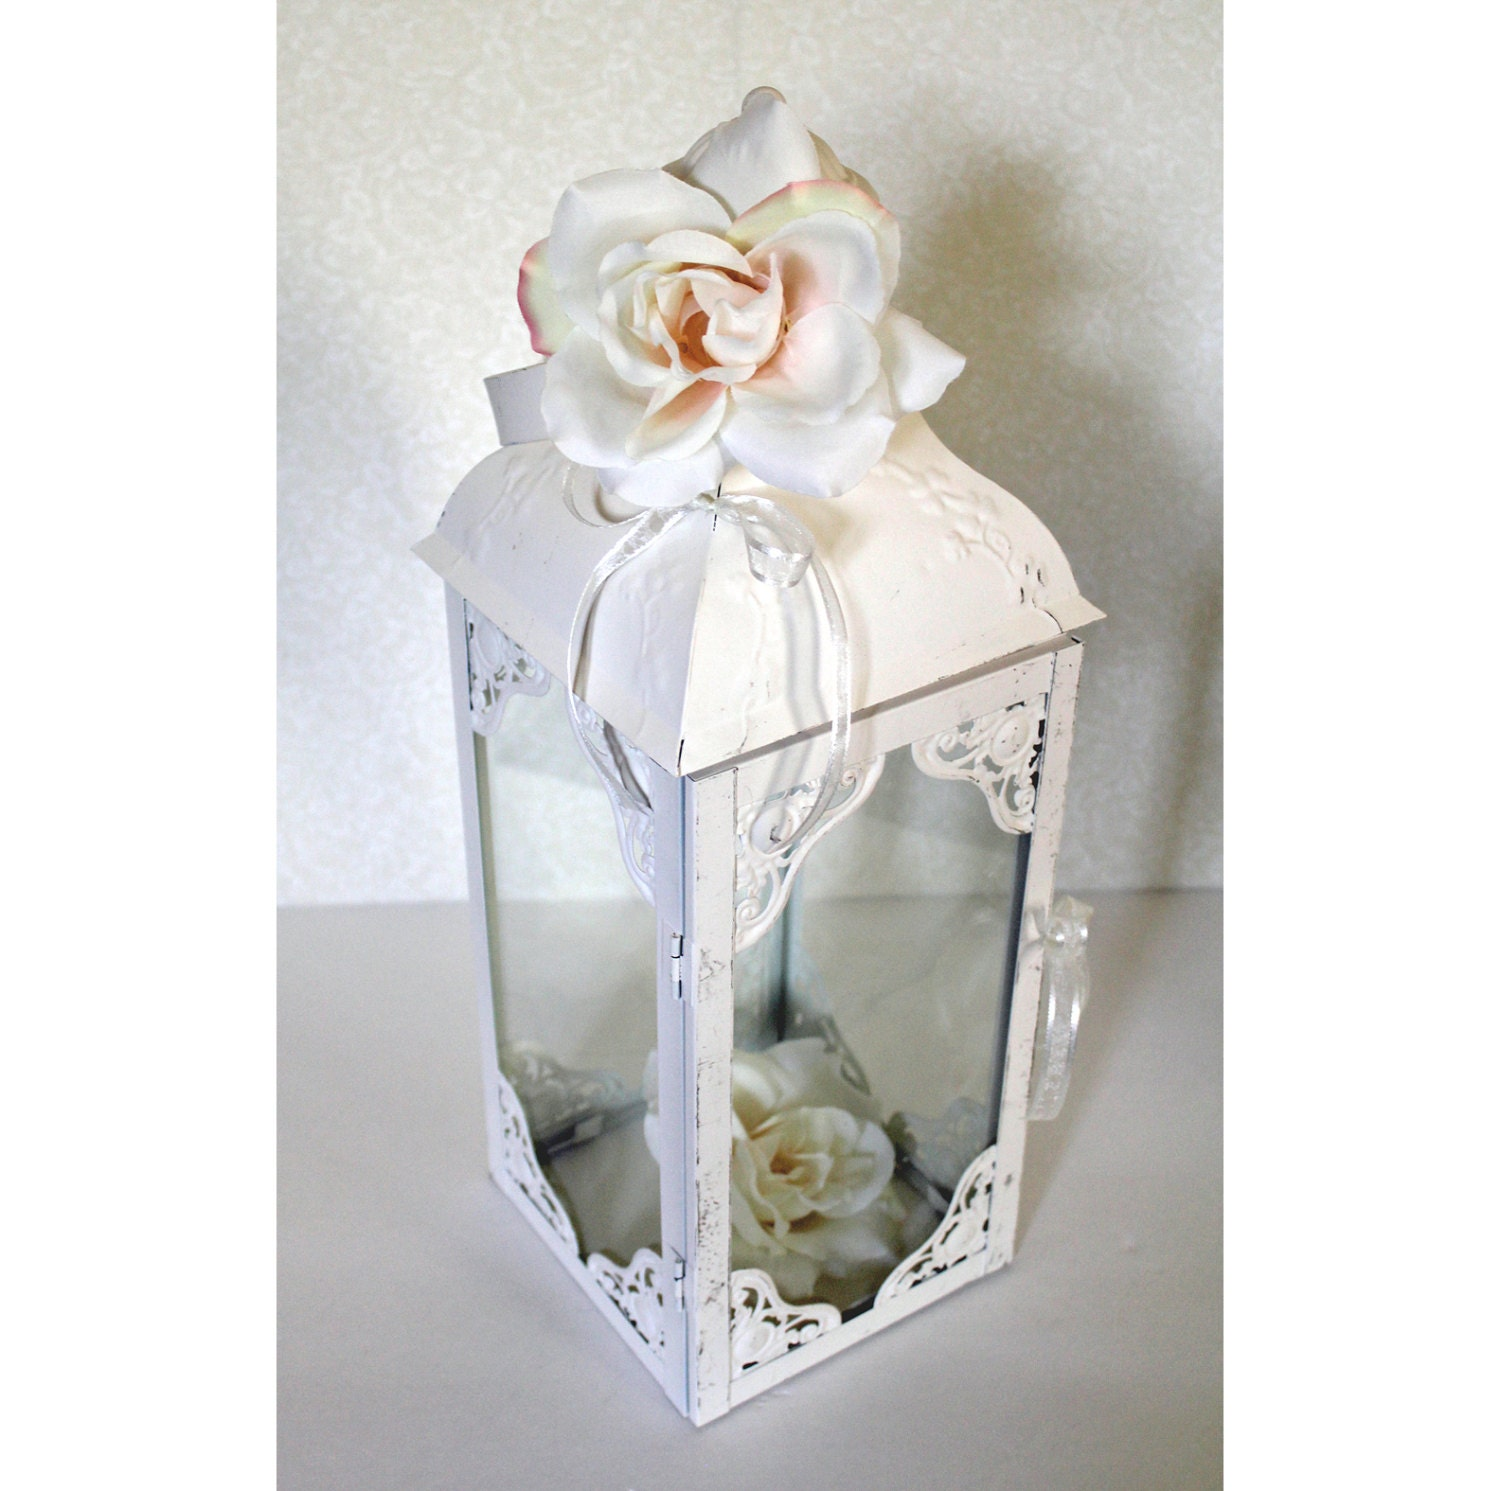 Wedding Lantern Centerpiece Antique White & Bright Ivory